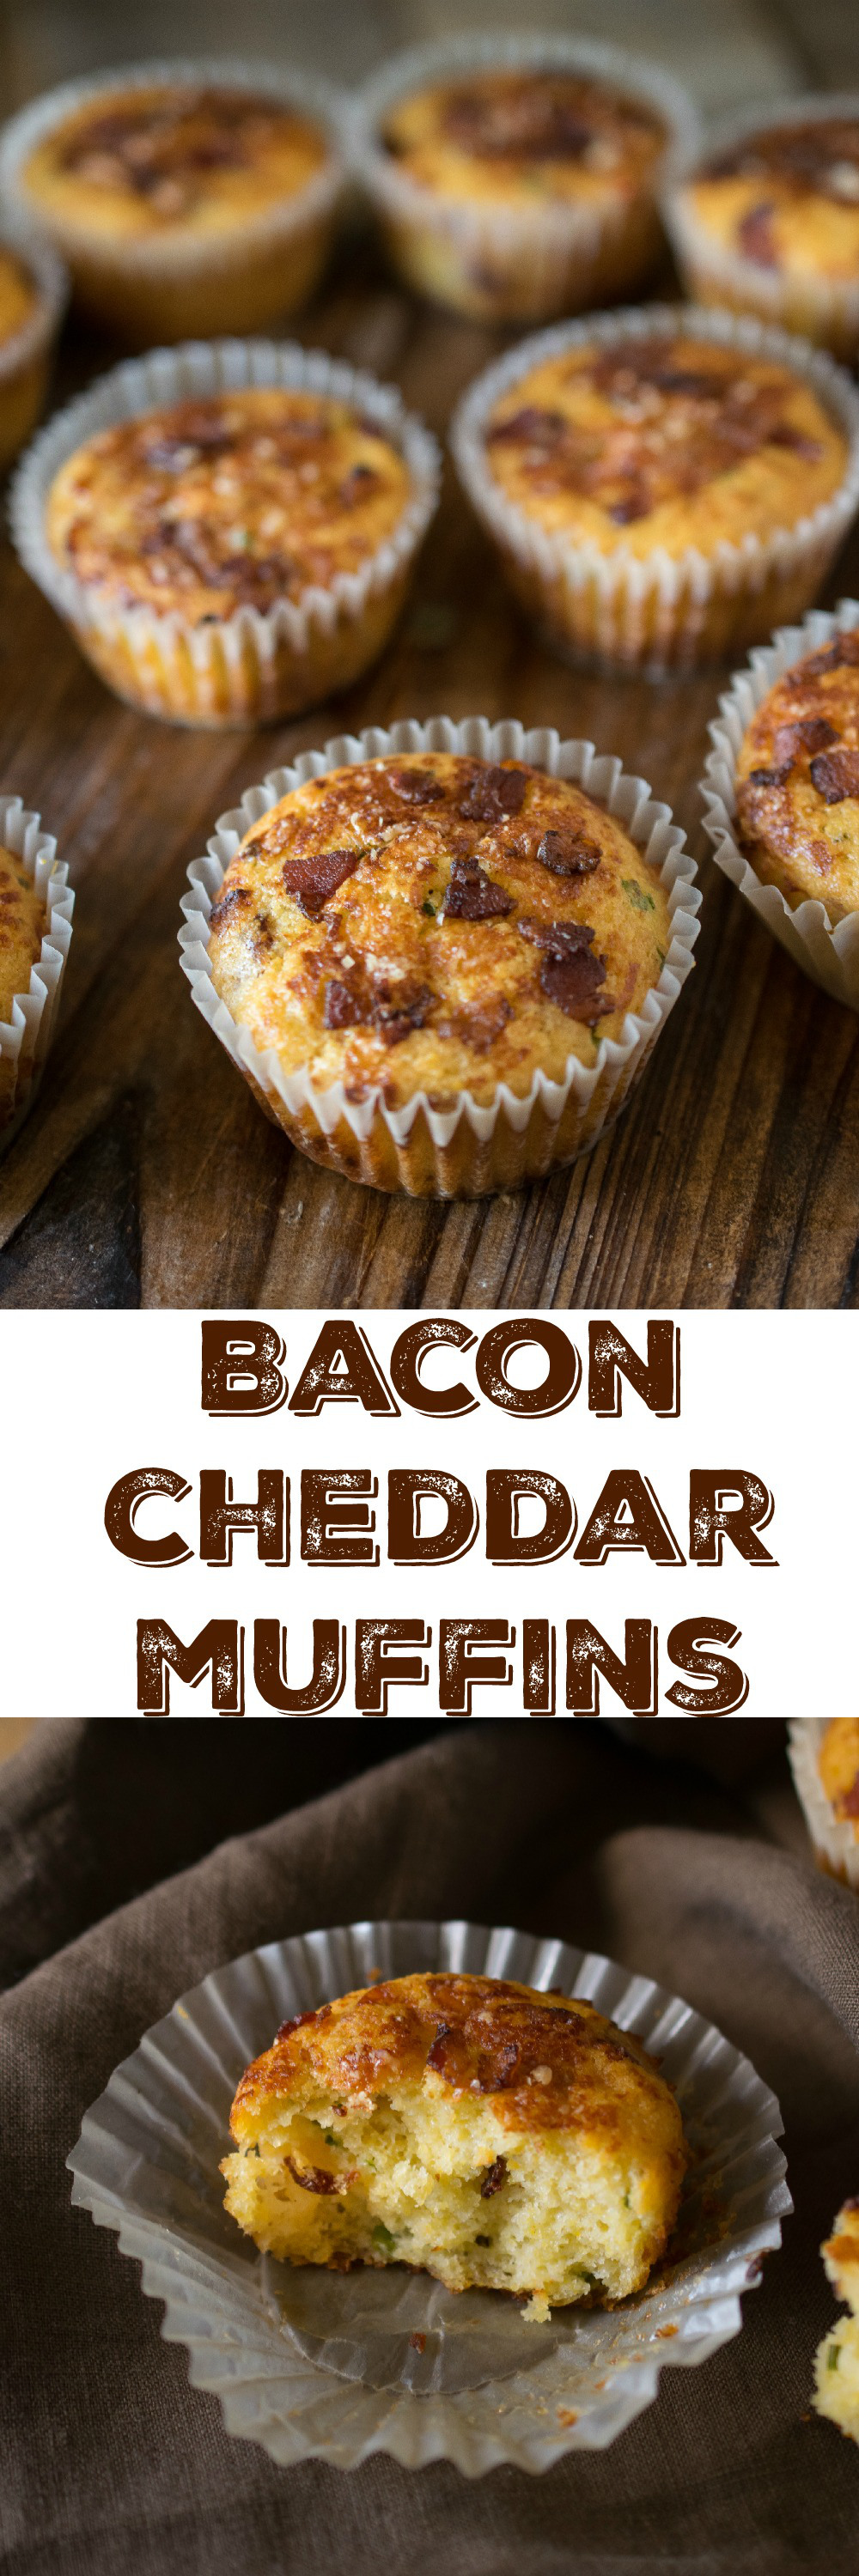 Bacon cheddar muffins - Bacon in a soft, fluffy muffin with cheese! Does it get…